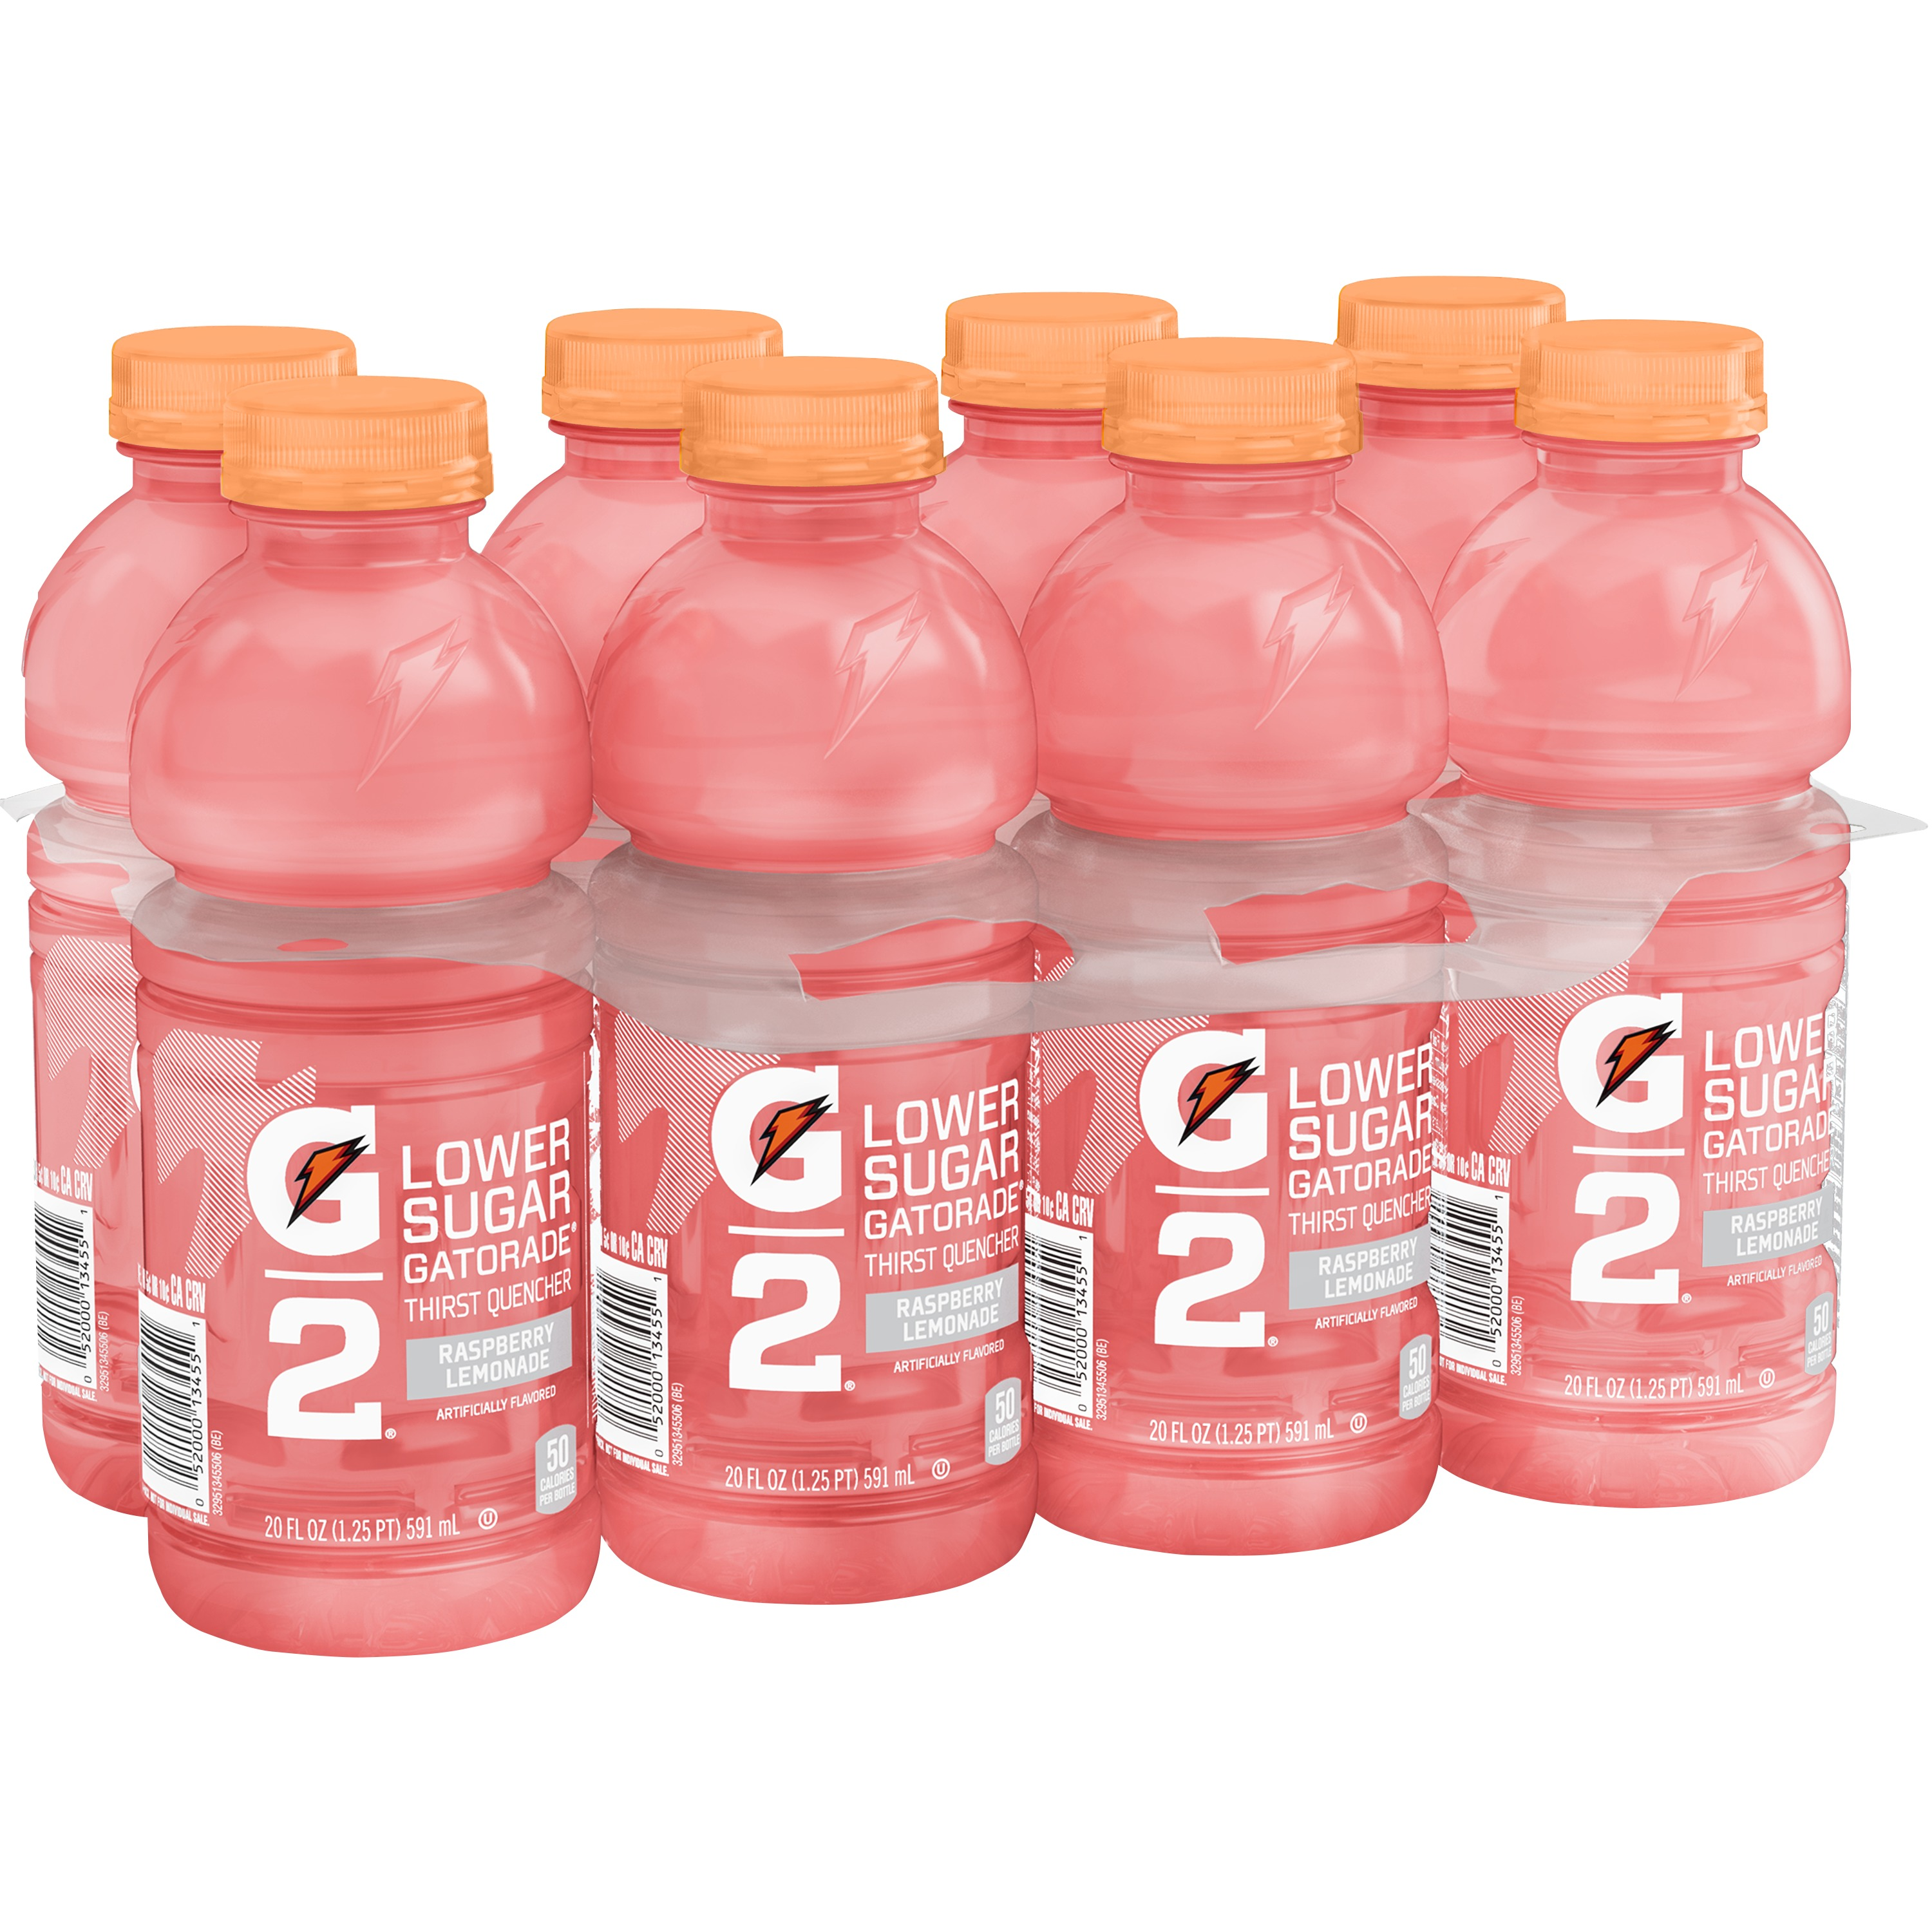 G2 Lower Sugar Gatorade Thirst Quencher Sports Drink, Raspberry Lemonade, 20 Fl Oz, 8 Count